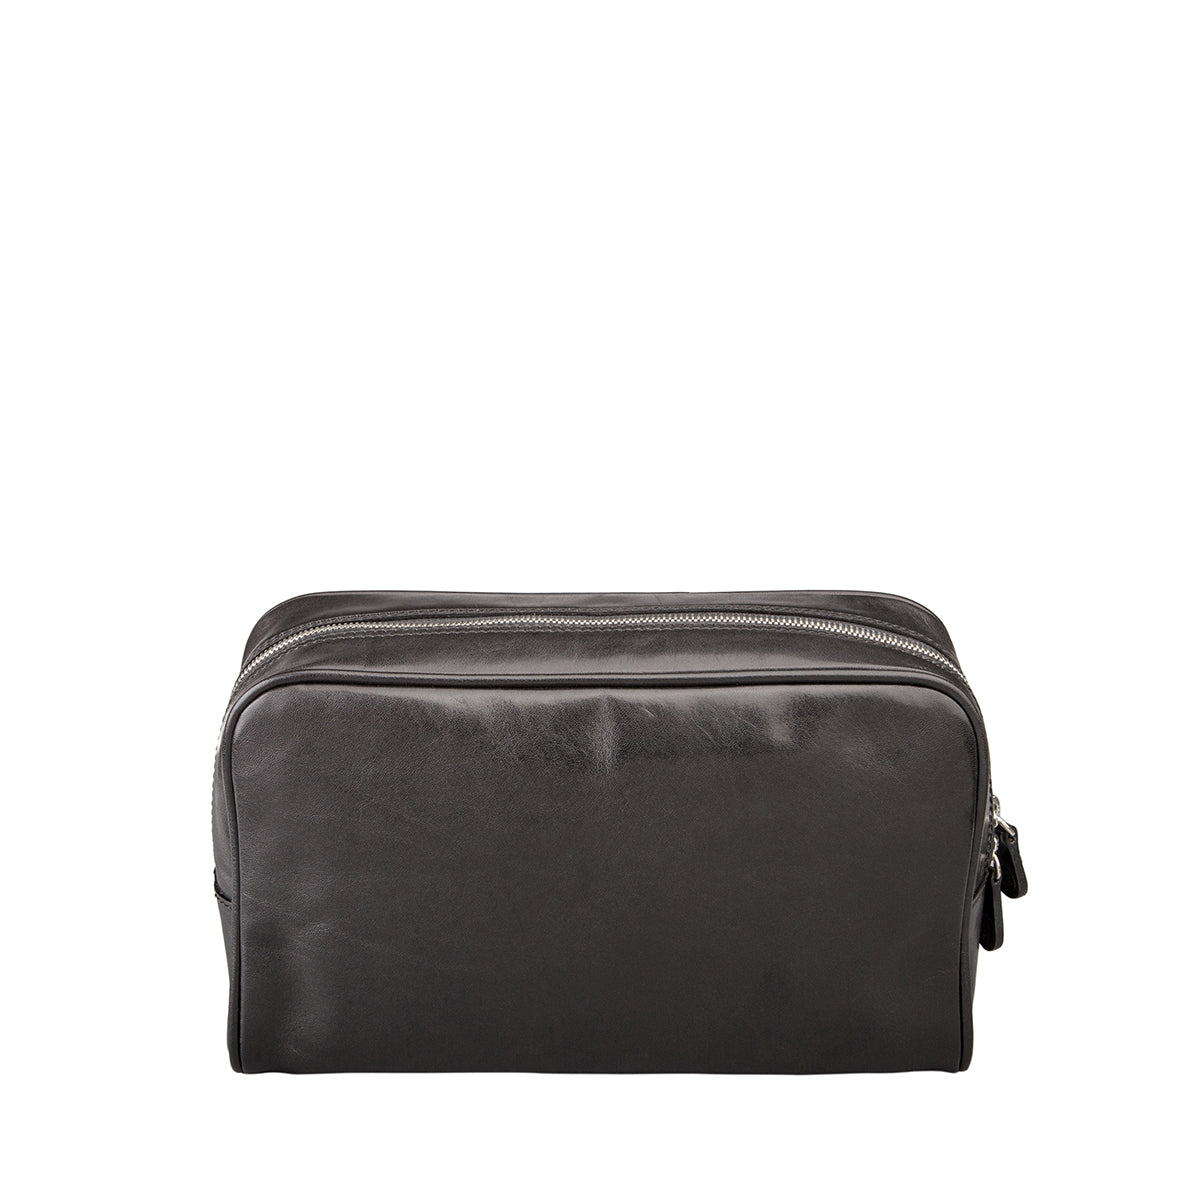 Image 4 of the 'Raffaelle' Black Veg-Tanned Leather Wash Bag